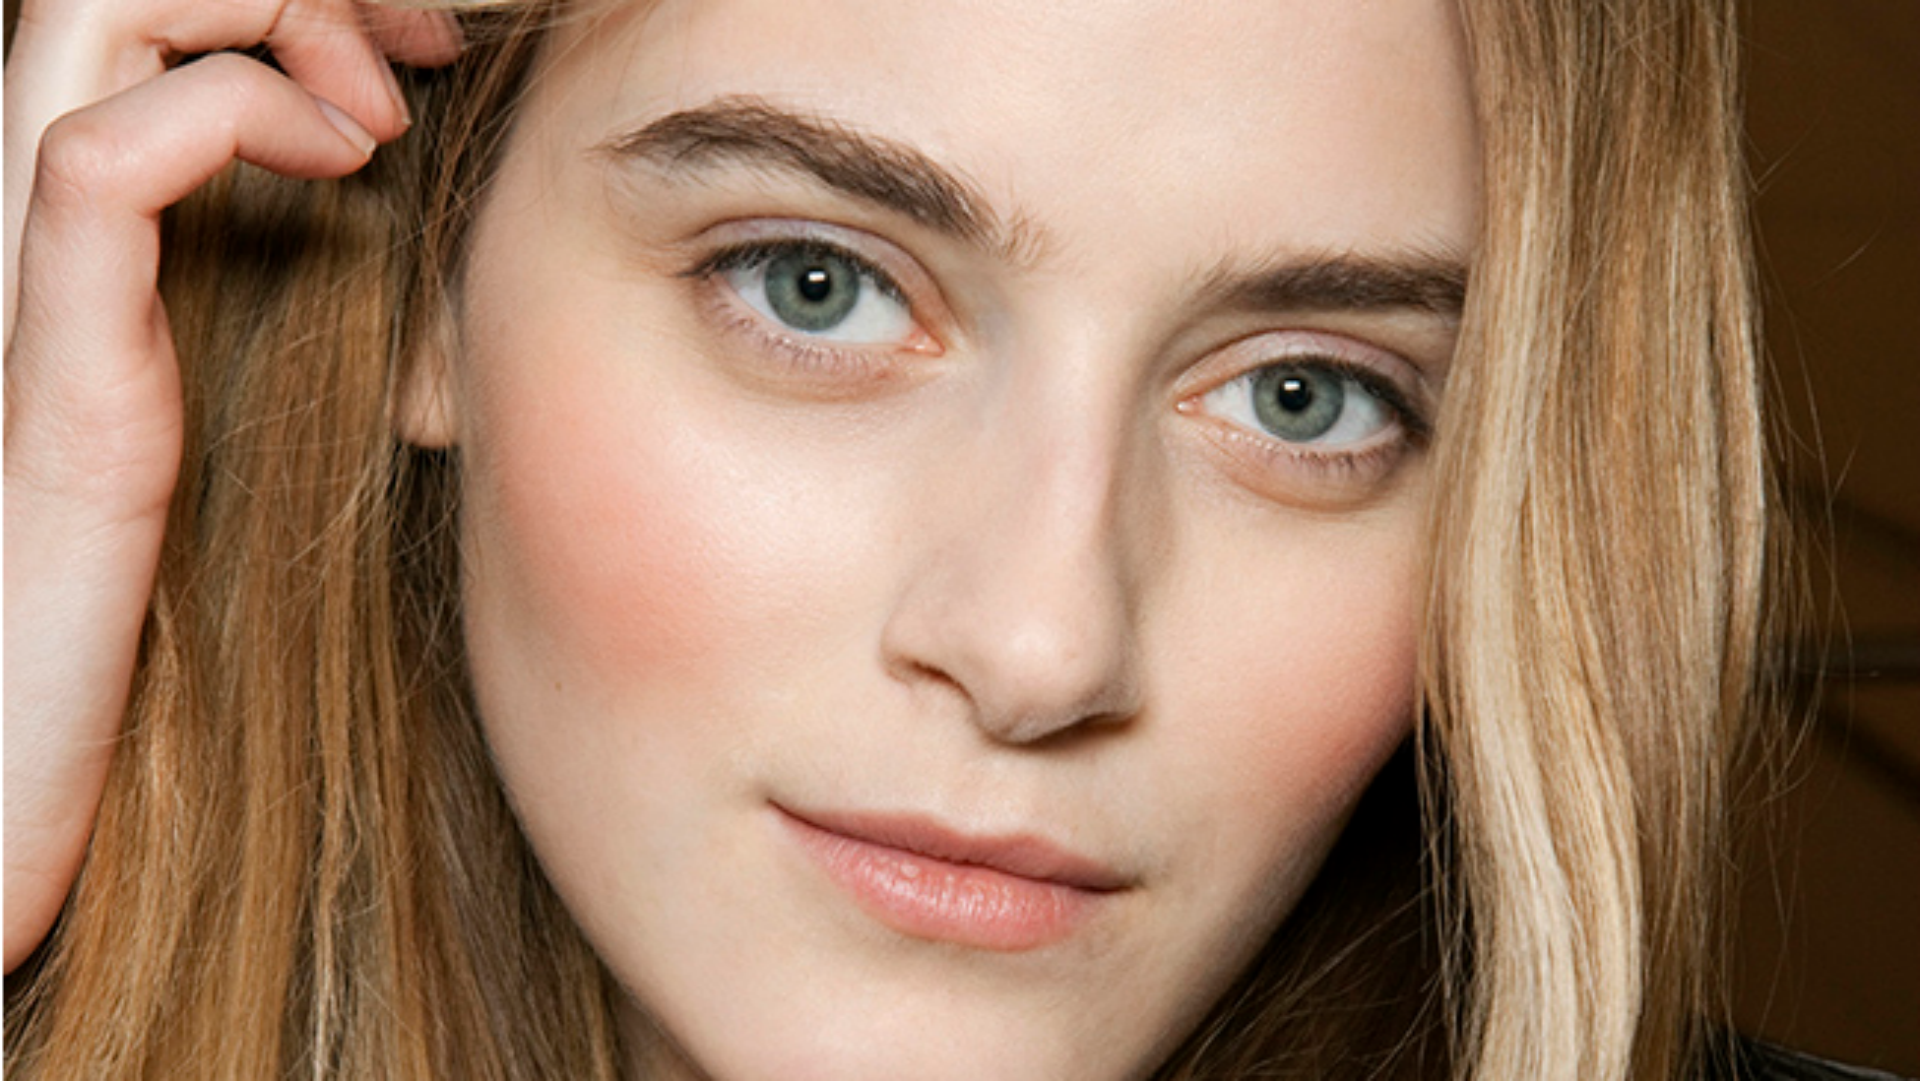 The Top Skincare Products to Brighten Skin—Because We All Need a Little Glow